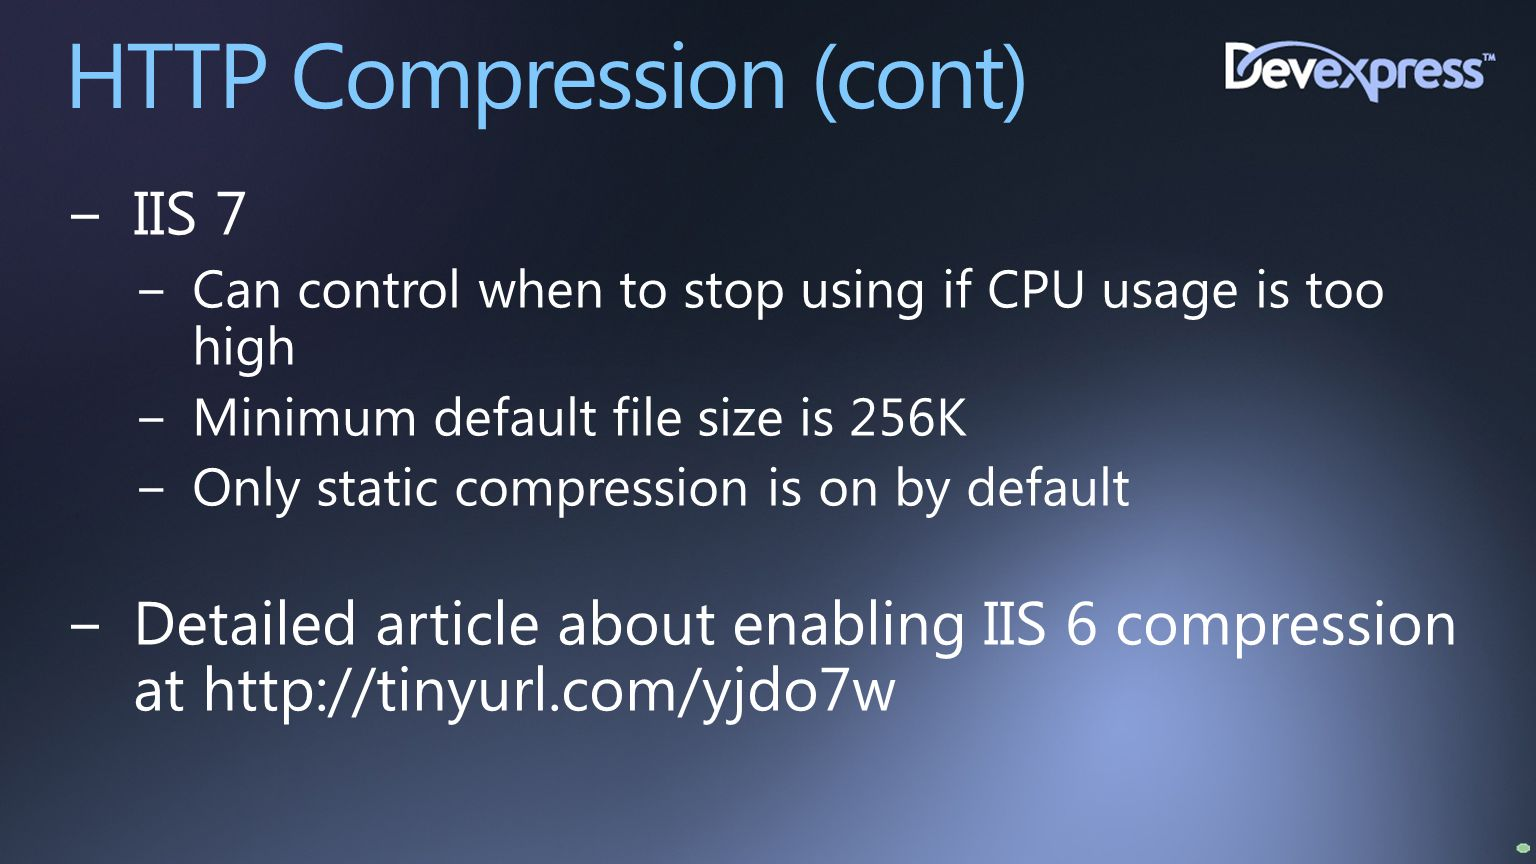 HTTP Compression (cont) −IIS 7 −Can control when to stop using if CPU usage is too high −Minimum default file size is 256K −Only static compression is